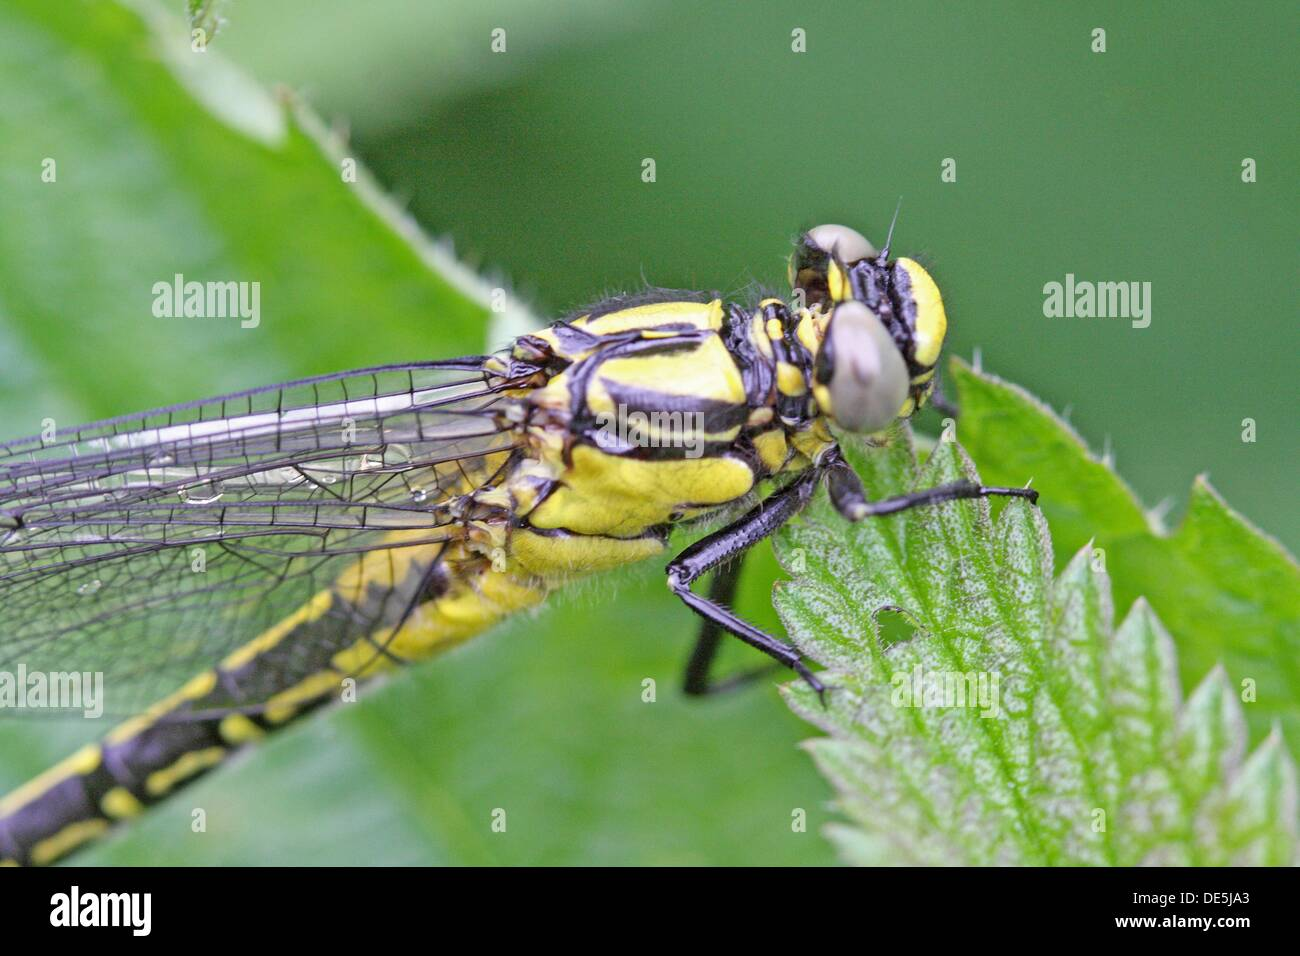 Newly emerged Common Clubtail from exuvia  Upper body  Clings to nettle leaf  Wings extended but draining  Water droplets can - Stock Image